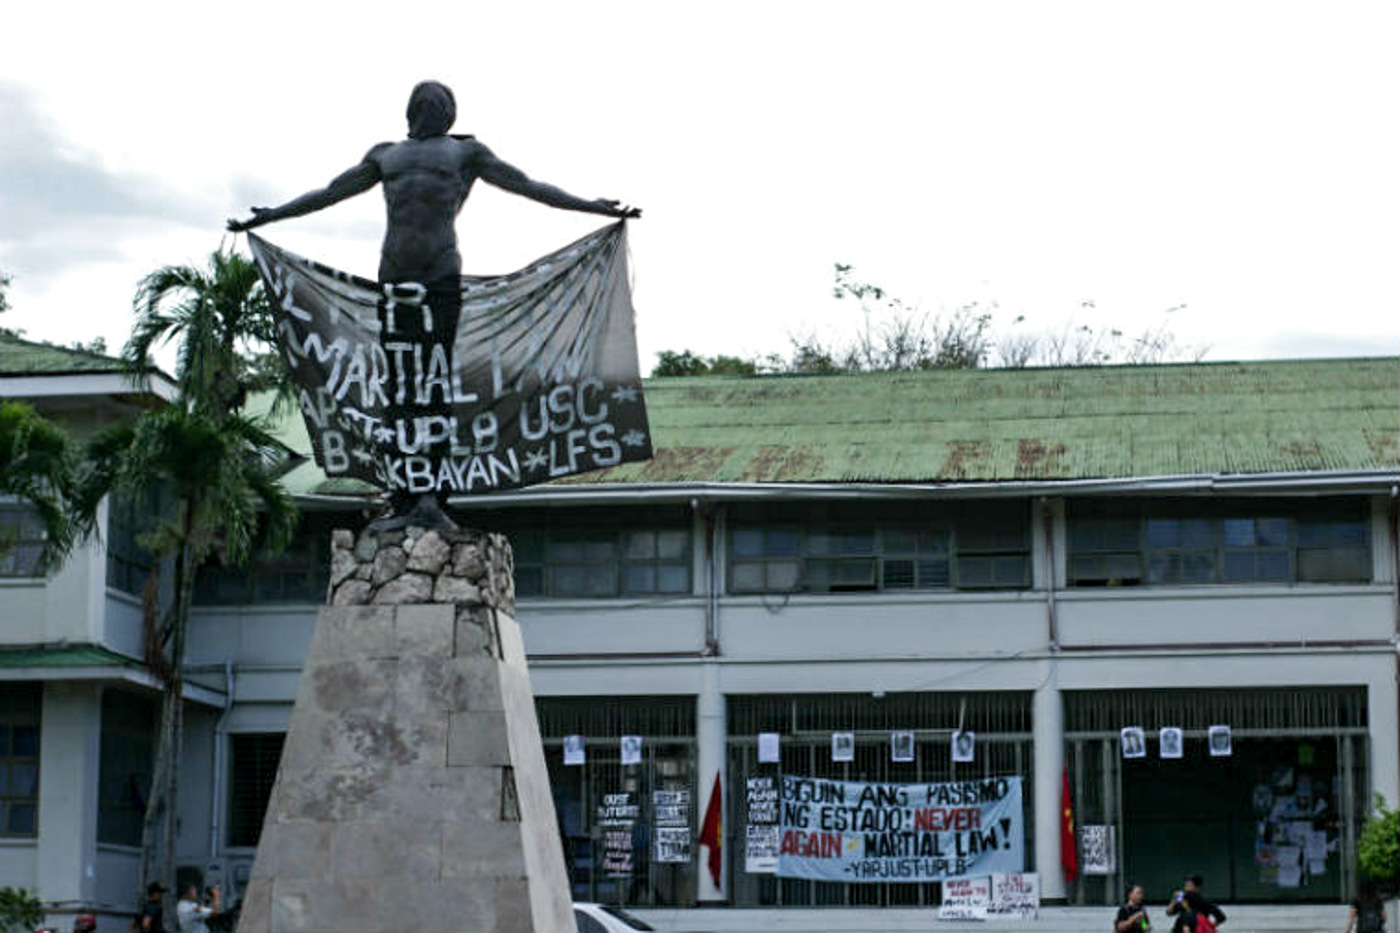 UPLB OBLATION. Students hang a banner on the UPLB oblation on Friday, September 21.  Photo by Neren Bartolay/Rappler